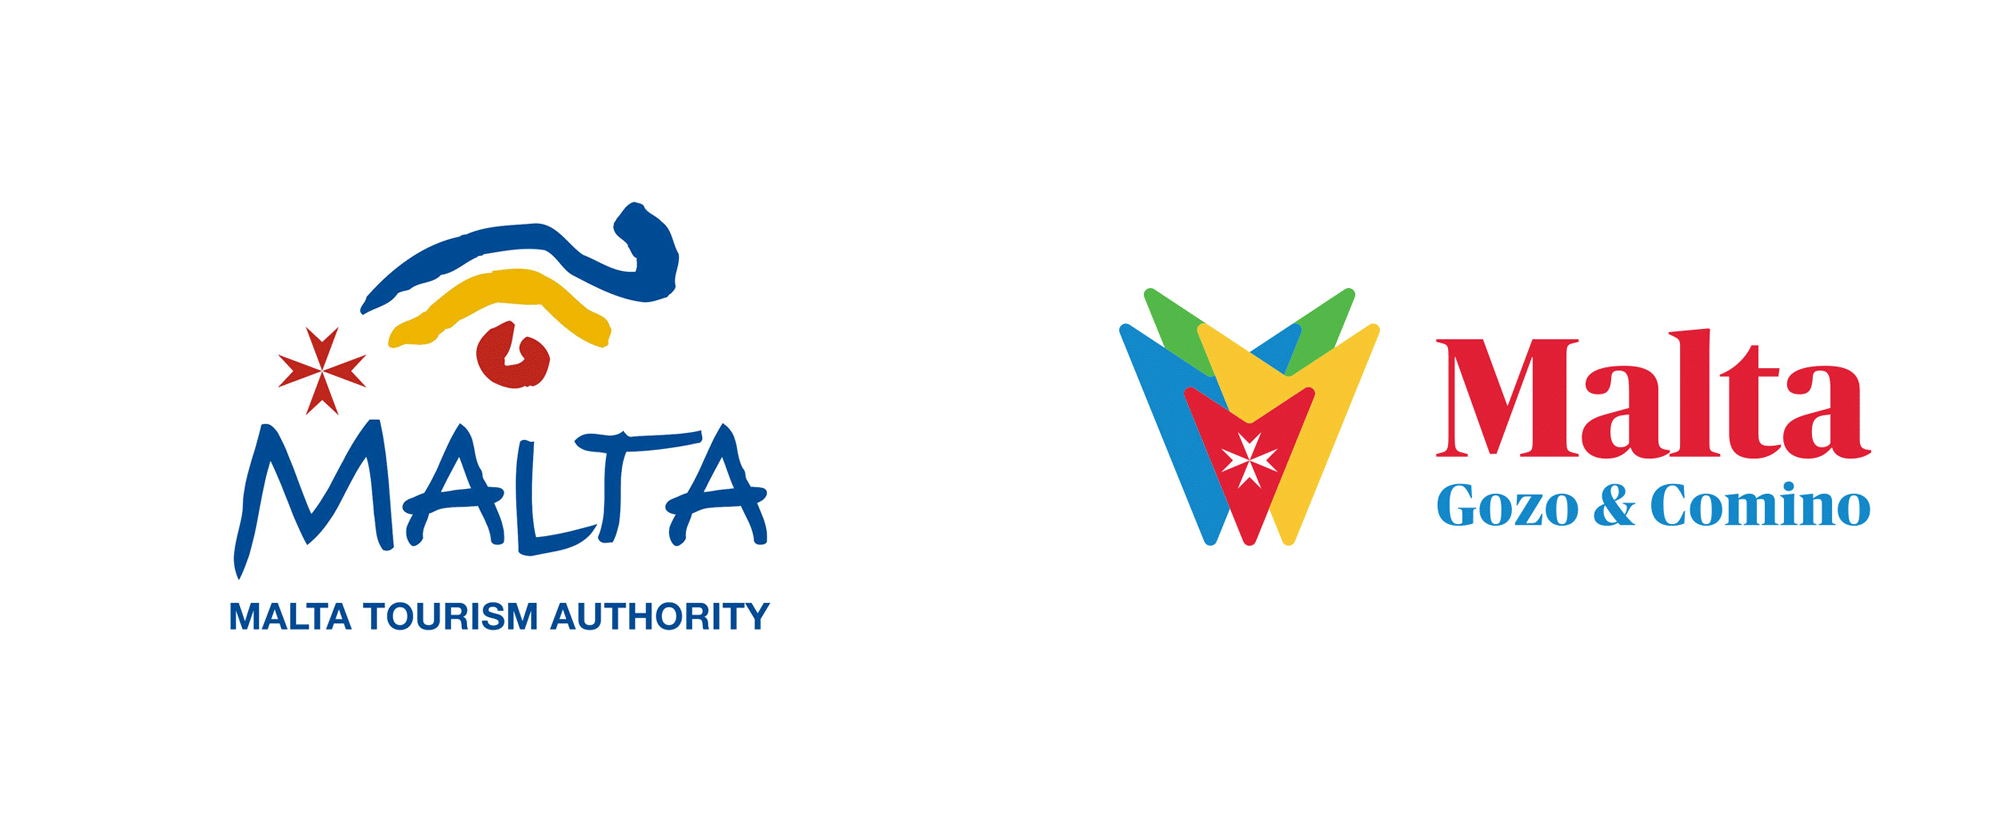 Brand New: New Logo and Identity for Malta by OLIVER.